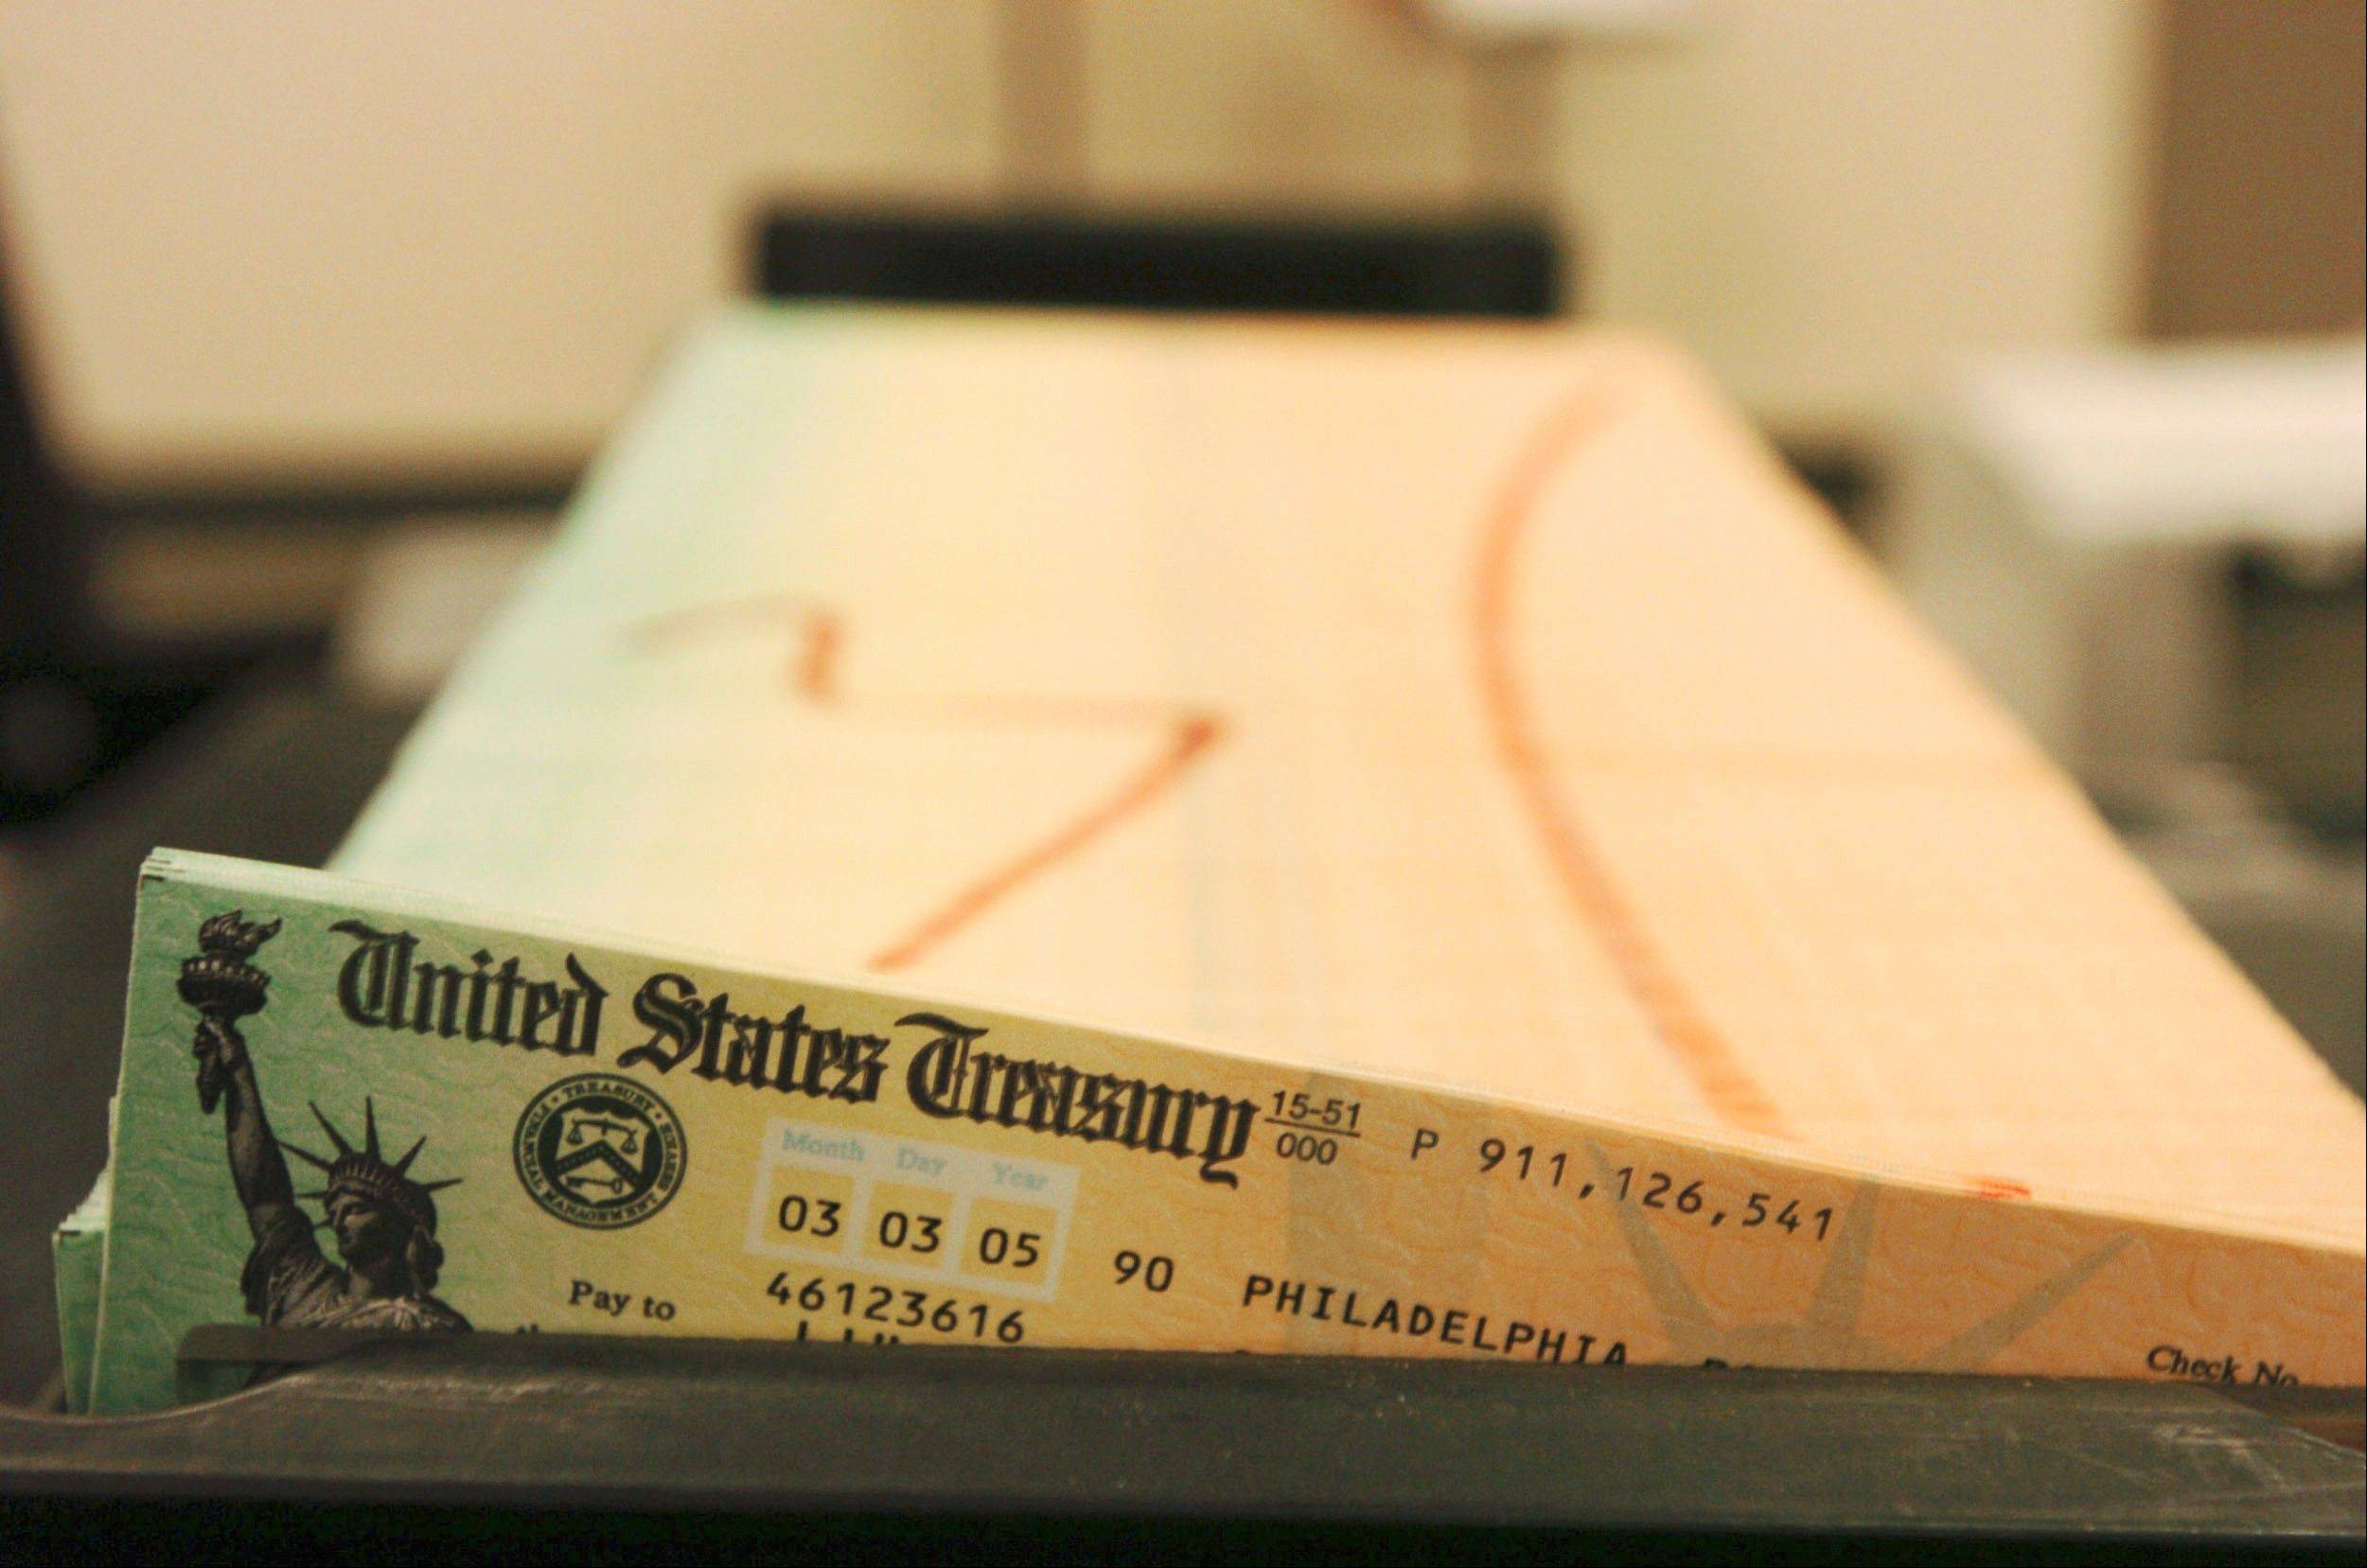 In this Feb. 11, 2005 file photo, trays of printed Social Security checks wait to be mailed from the U.S. Treasury's Financial Management services facility in Philadelphia. For the second straight year, millions of Social Security recipients can expect an historically small increase in benefits come January 2014.